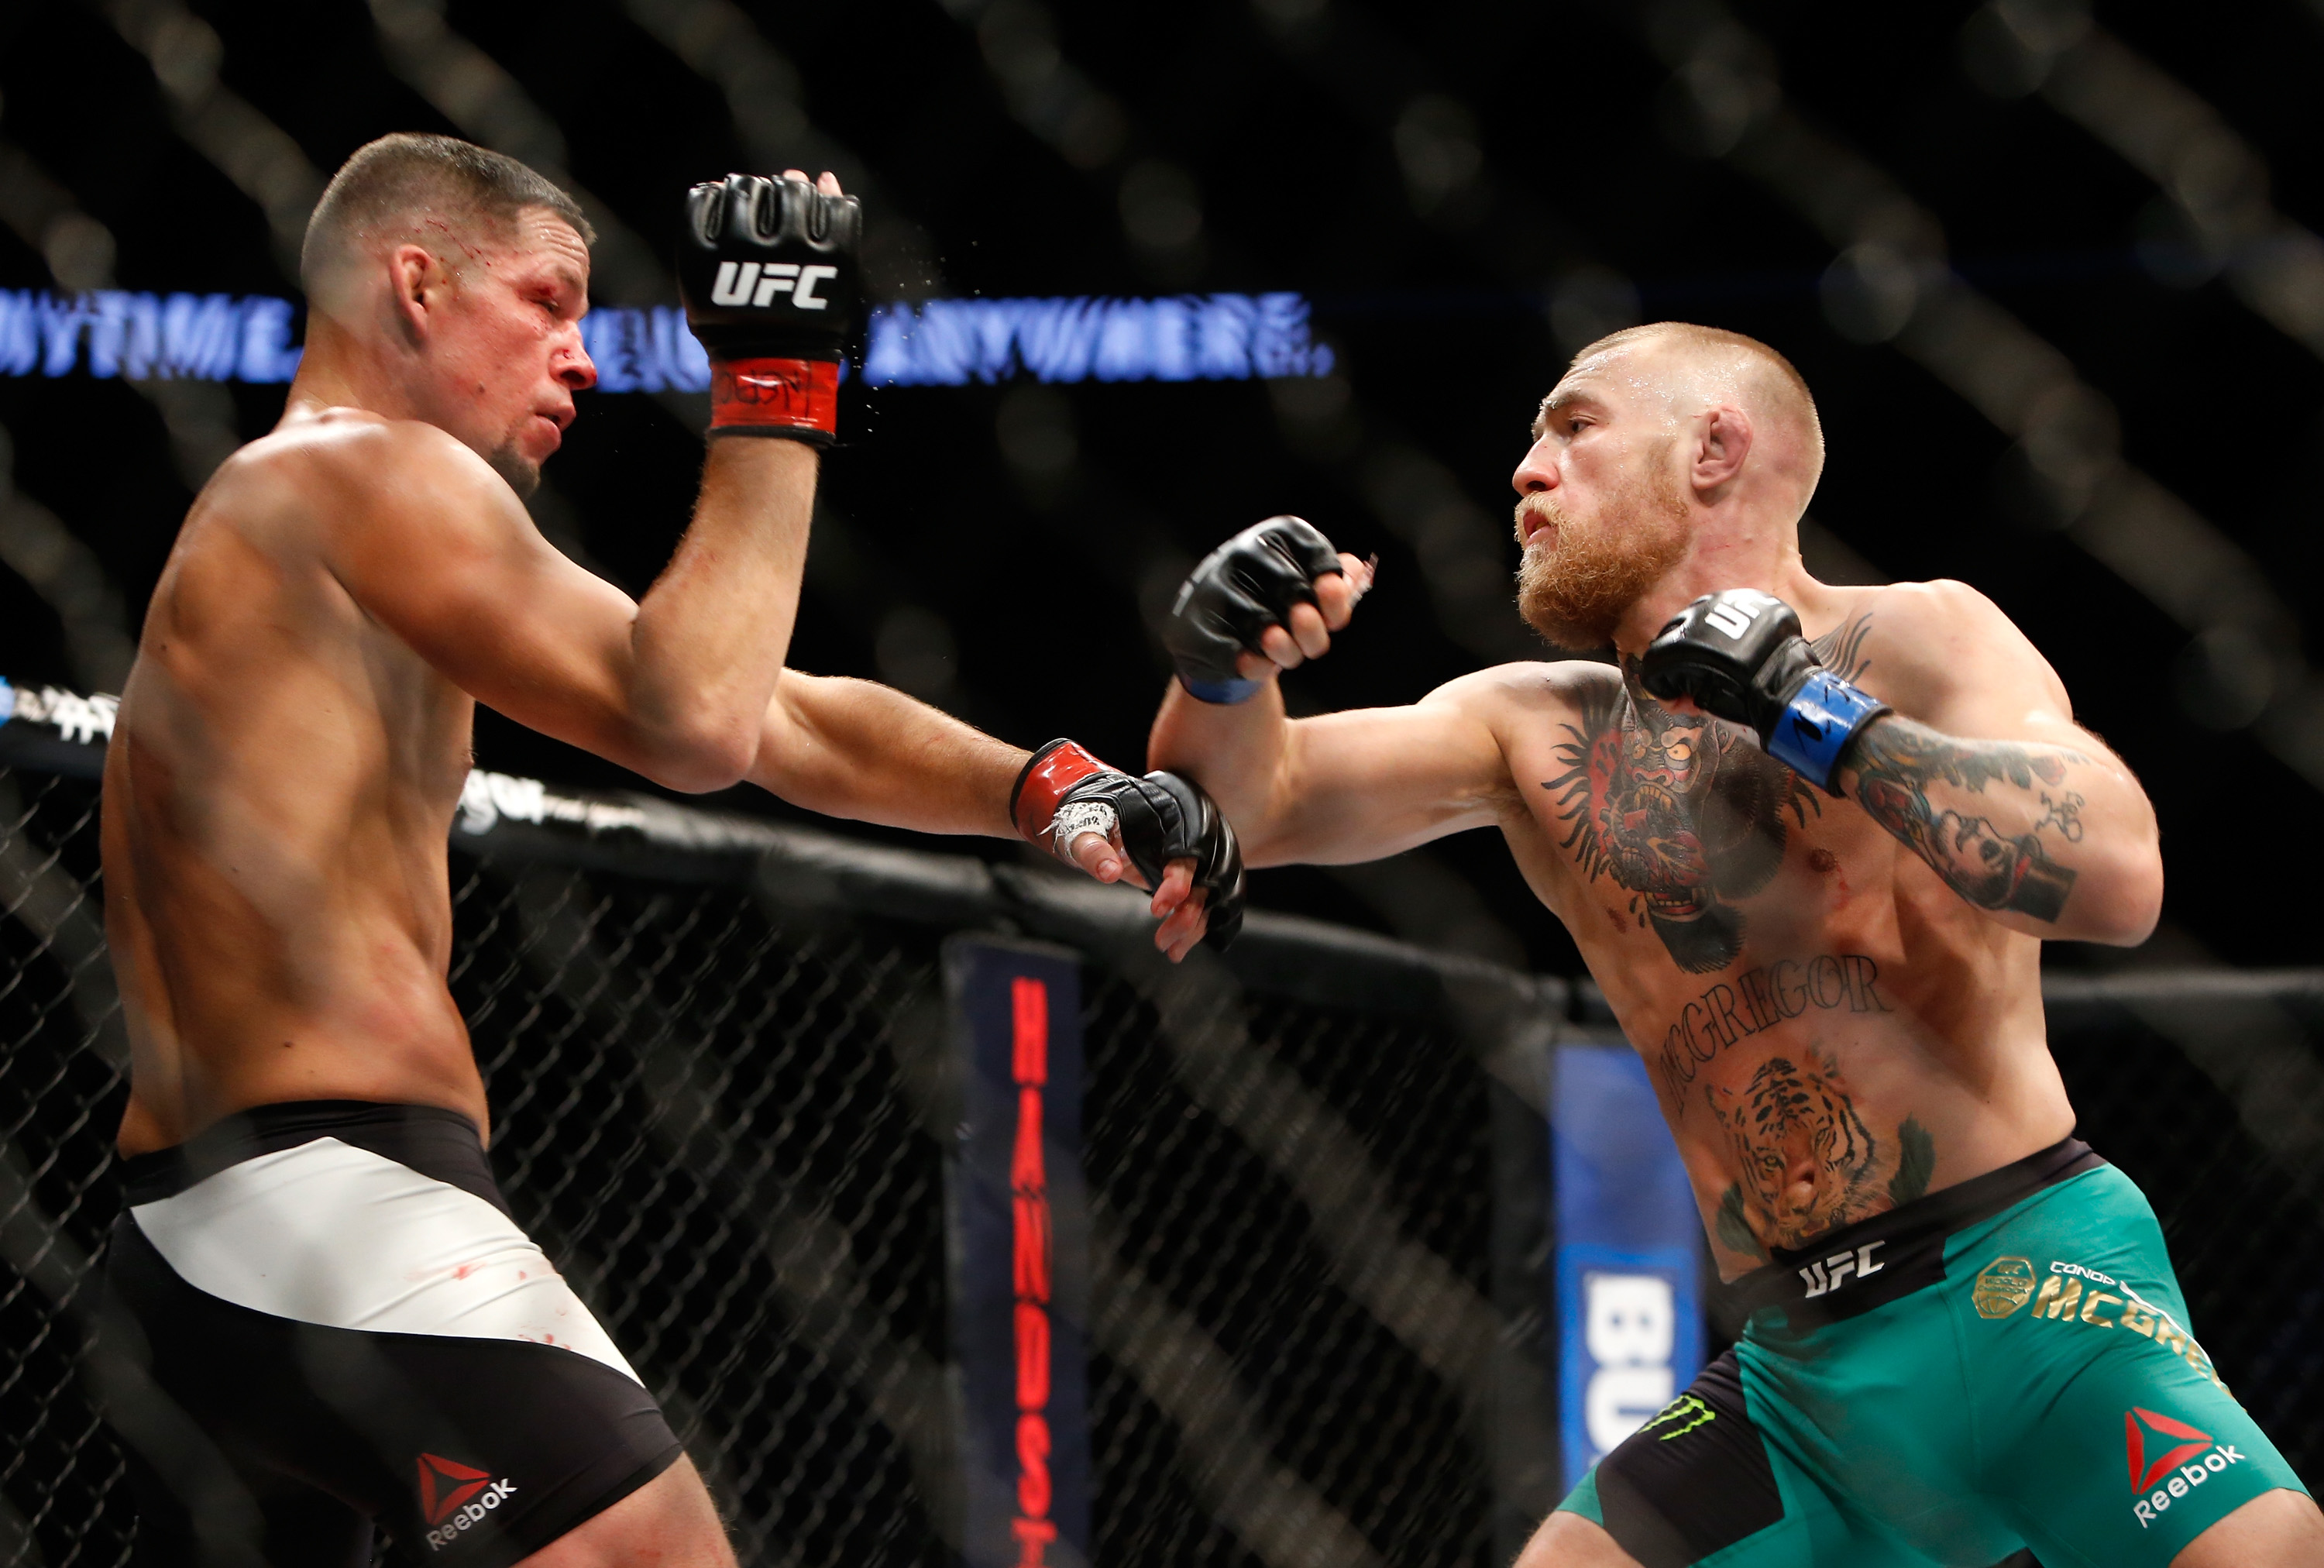 Nate Diaz (L) and Conor McGregor battle during their welterweight rematch at the UFC 202 even, August 20, 2016. (Steve Marcus/Getty Images)